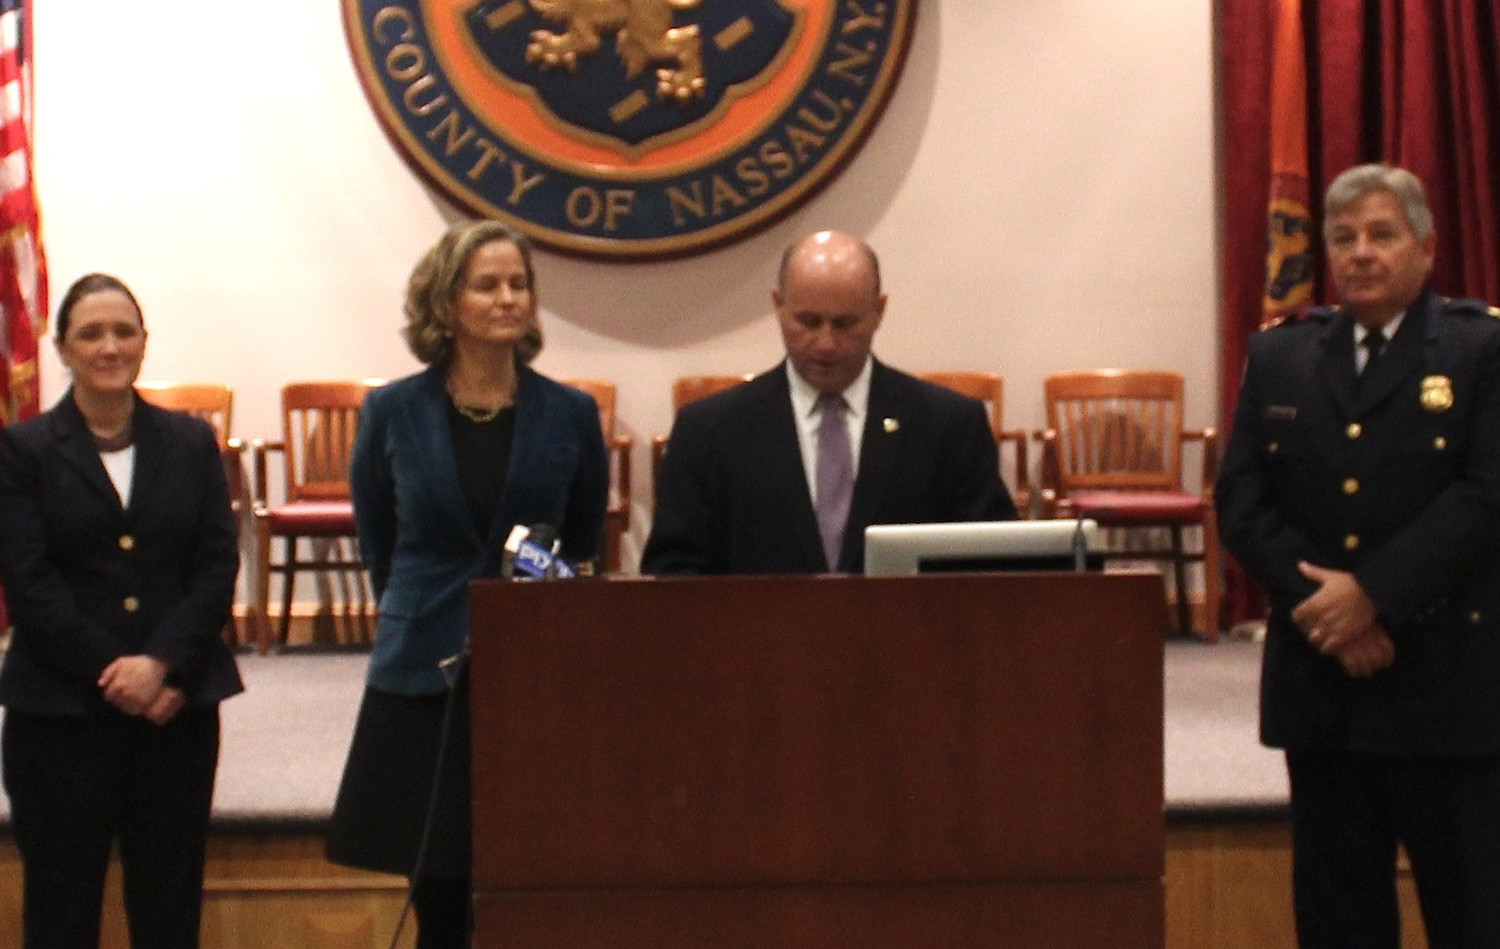 Nassau County Executive Laura Curran announced at Wednesday her decision to appoint Patrick Ryder, the acting commissioner of the Nassau County Police Department, as the department's permanent commissioner.